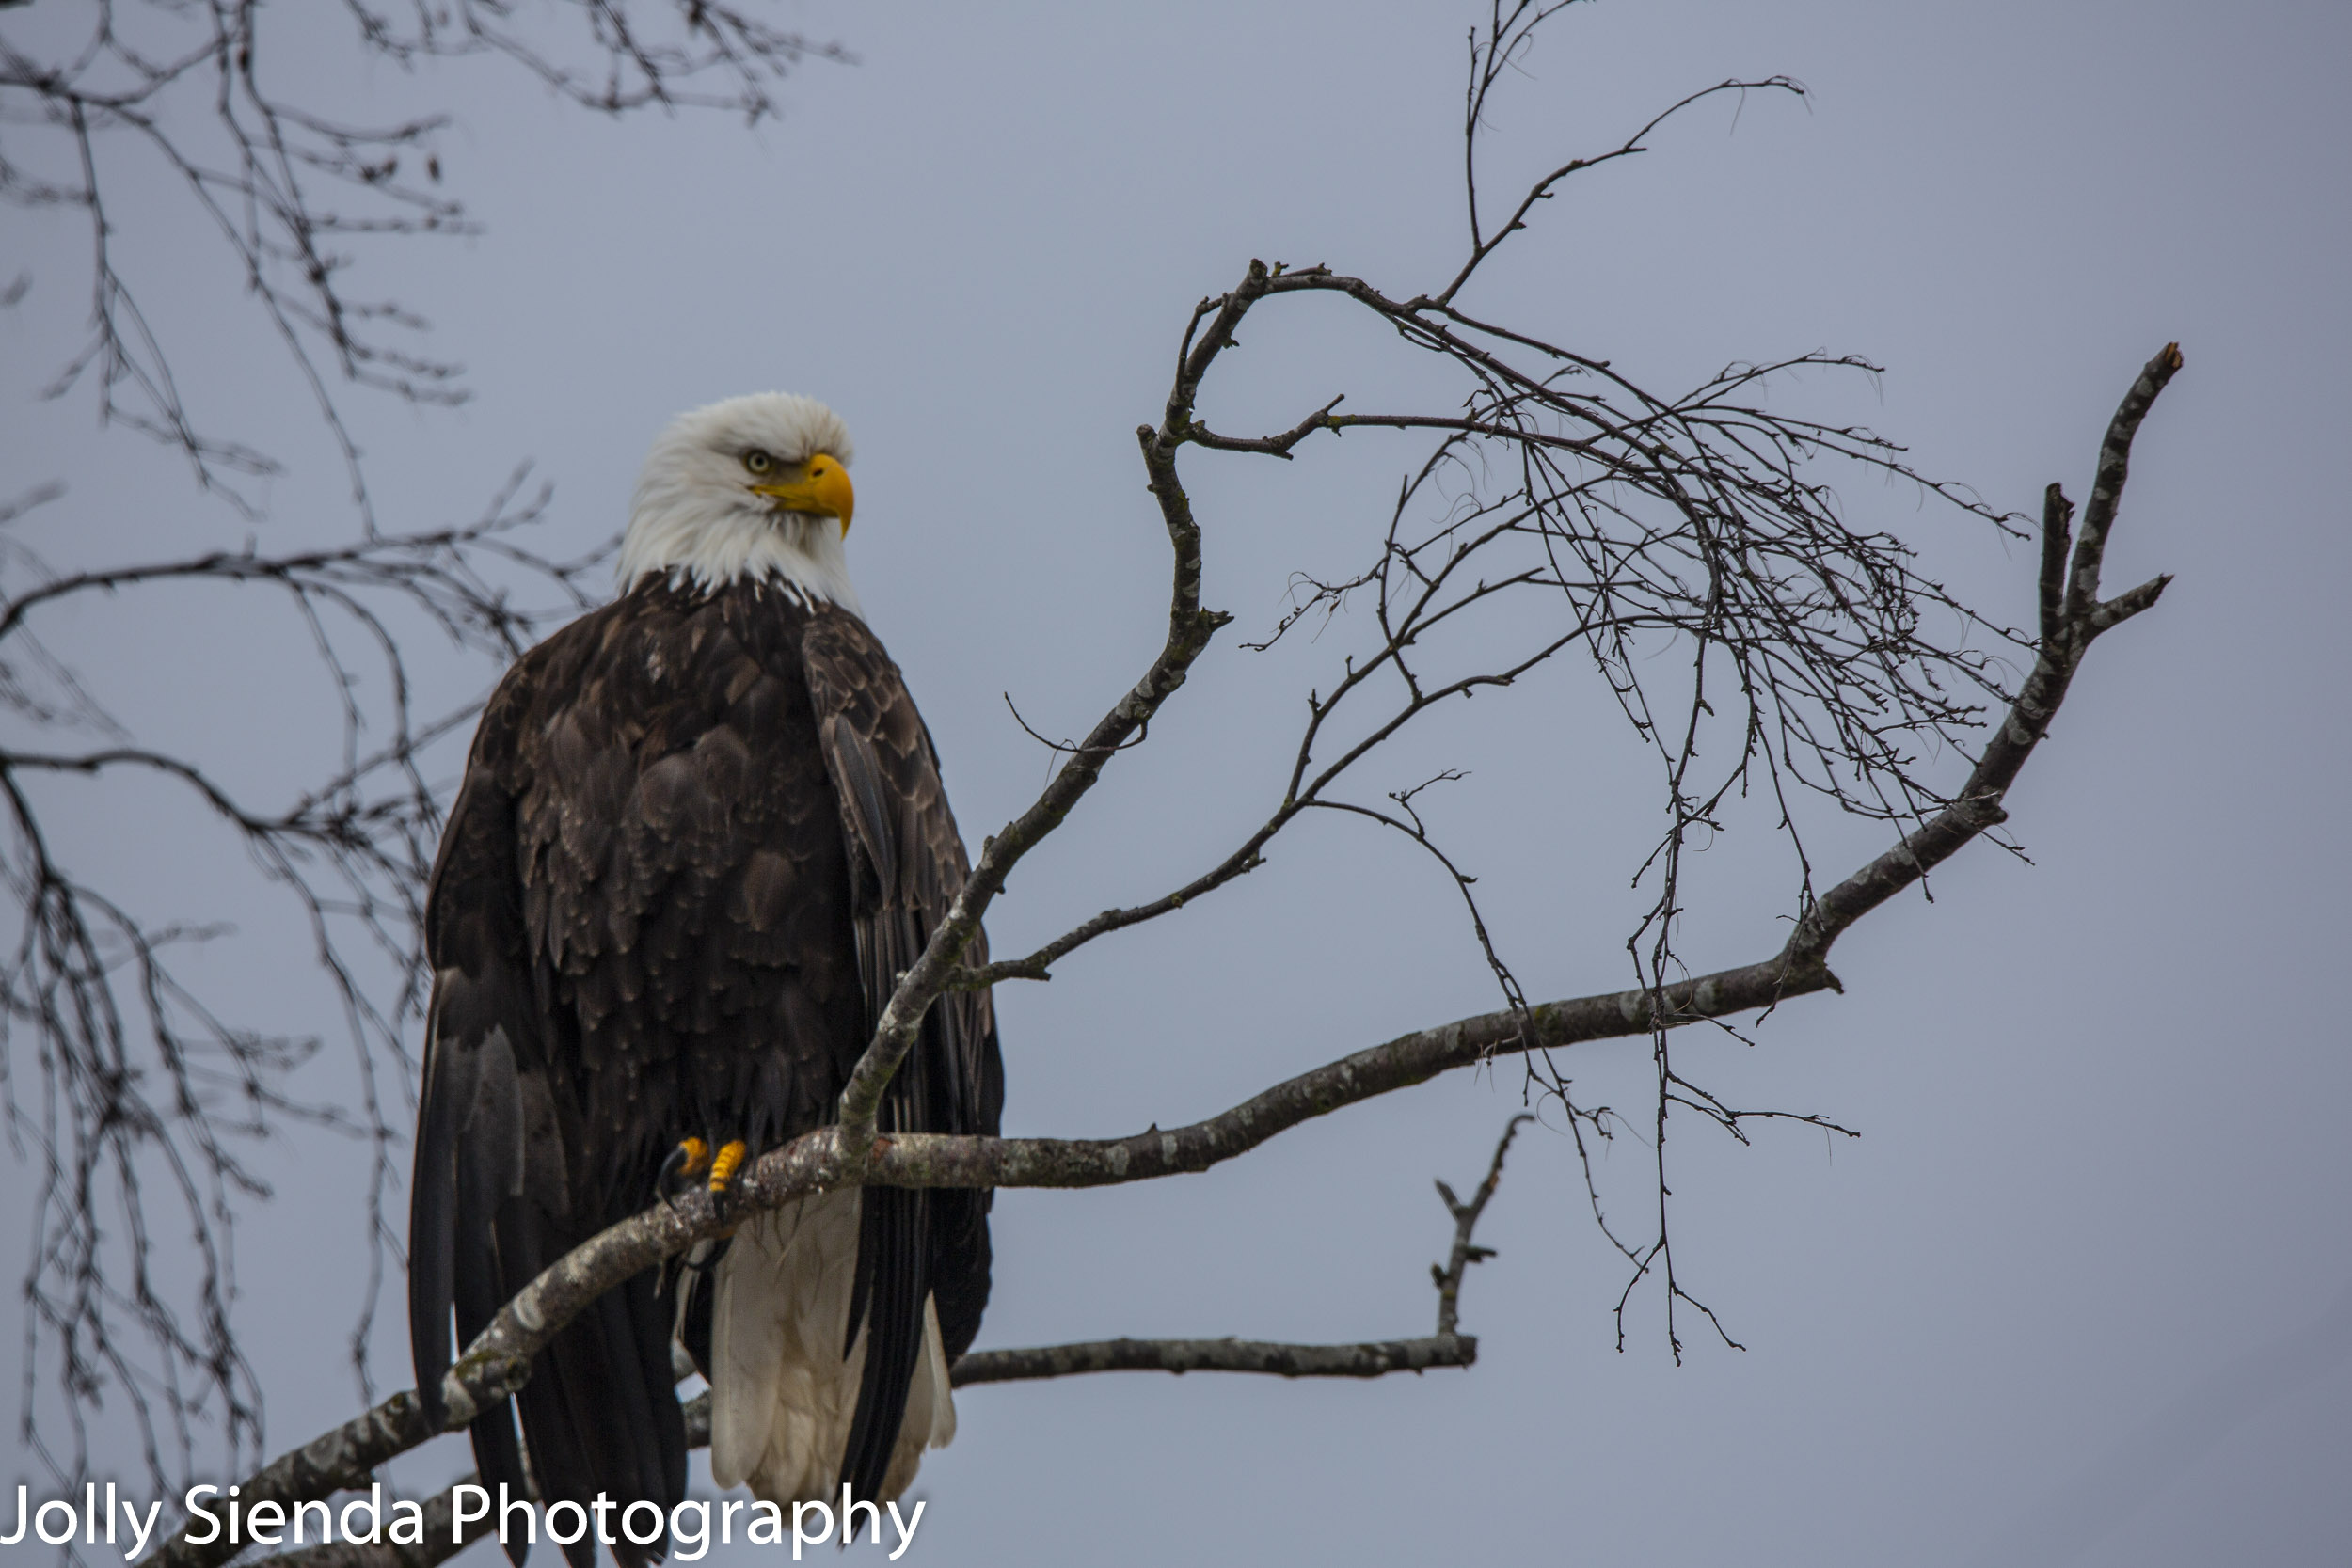 Bald Eagle on a winterized tree branch at Skagit Valley, Washington